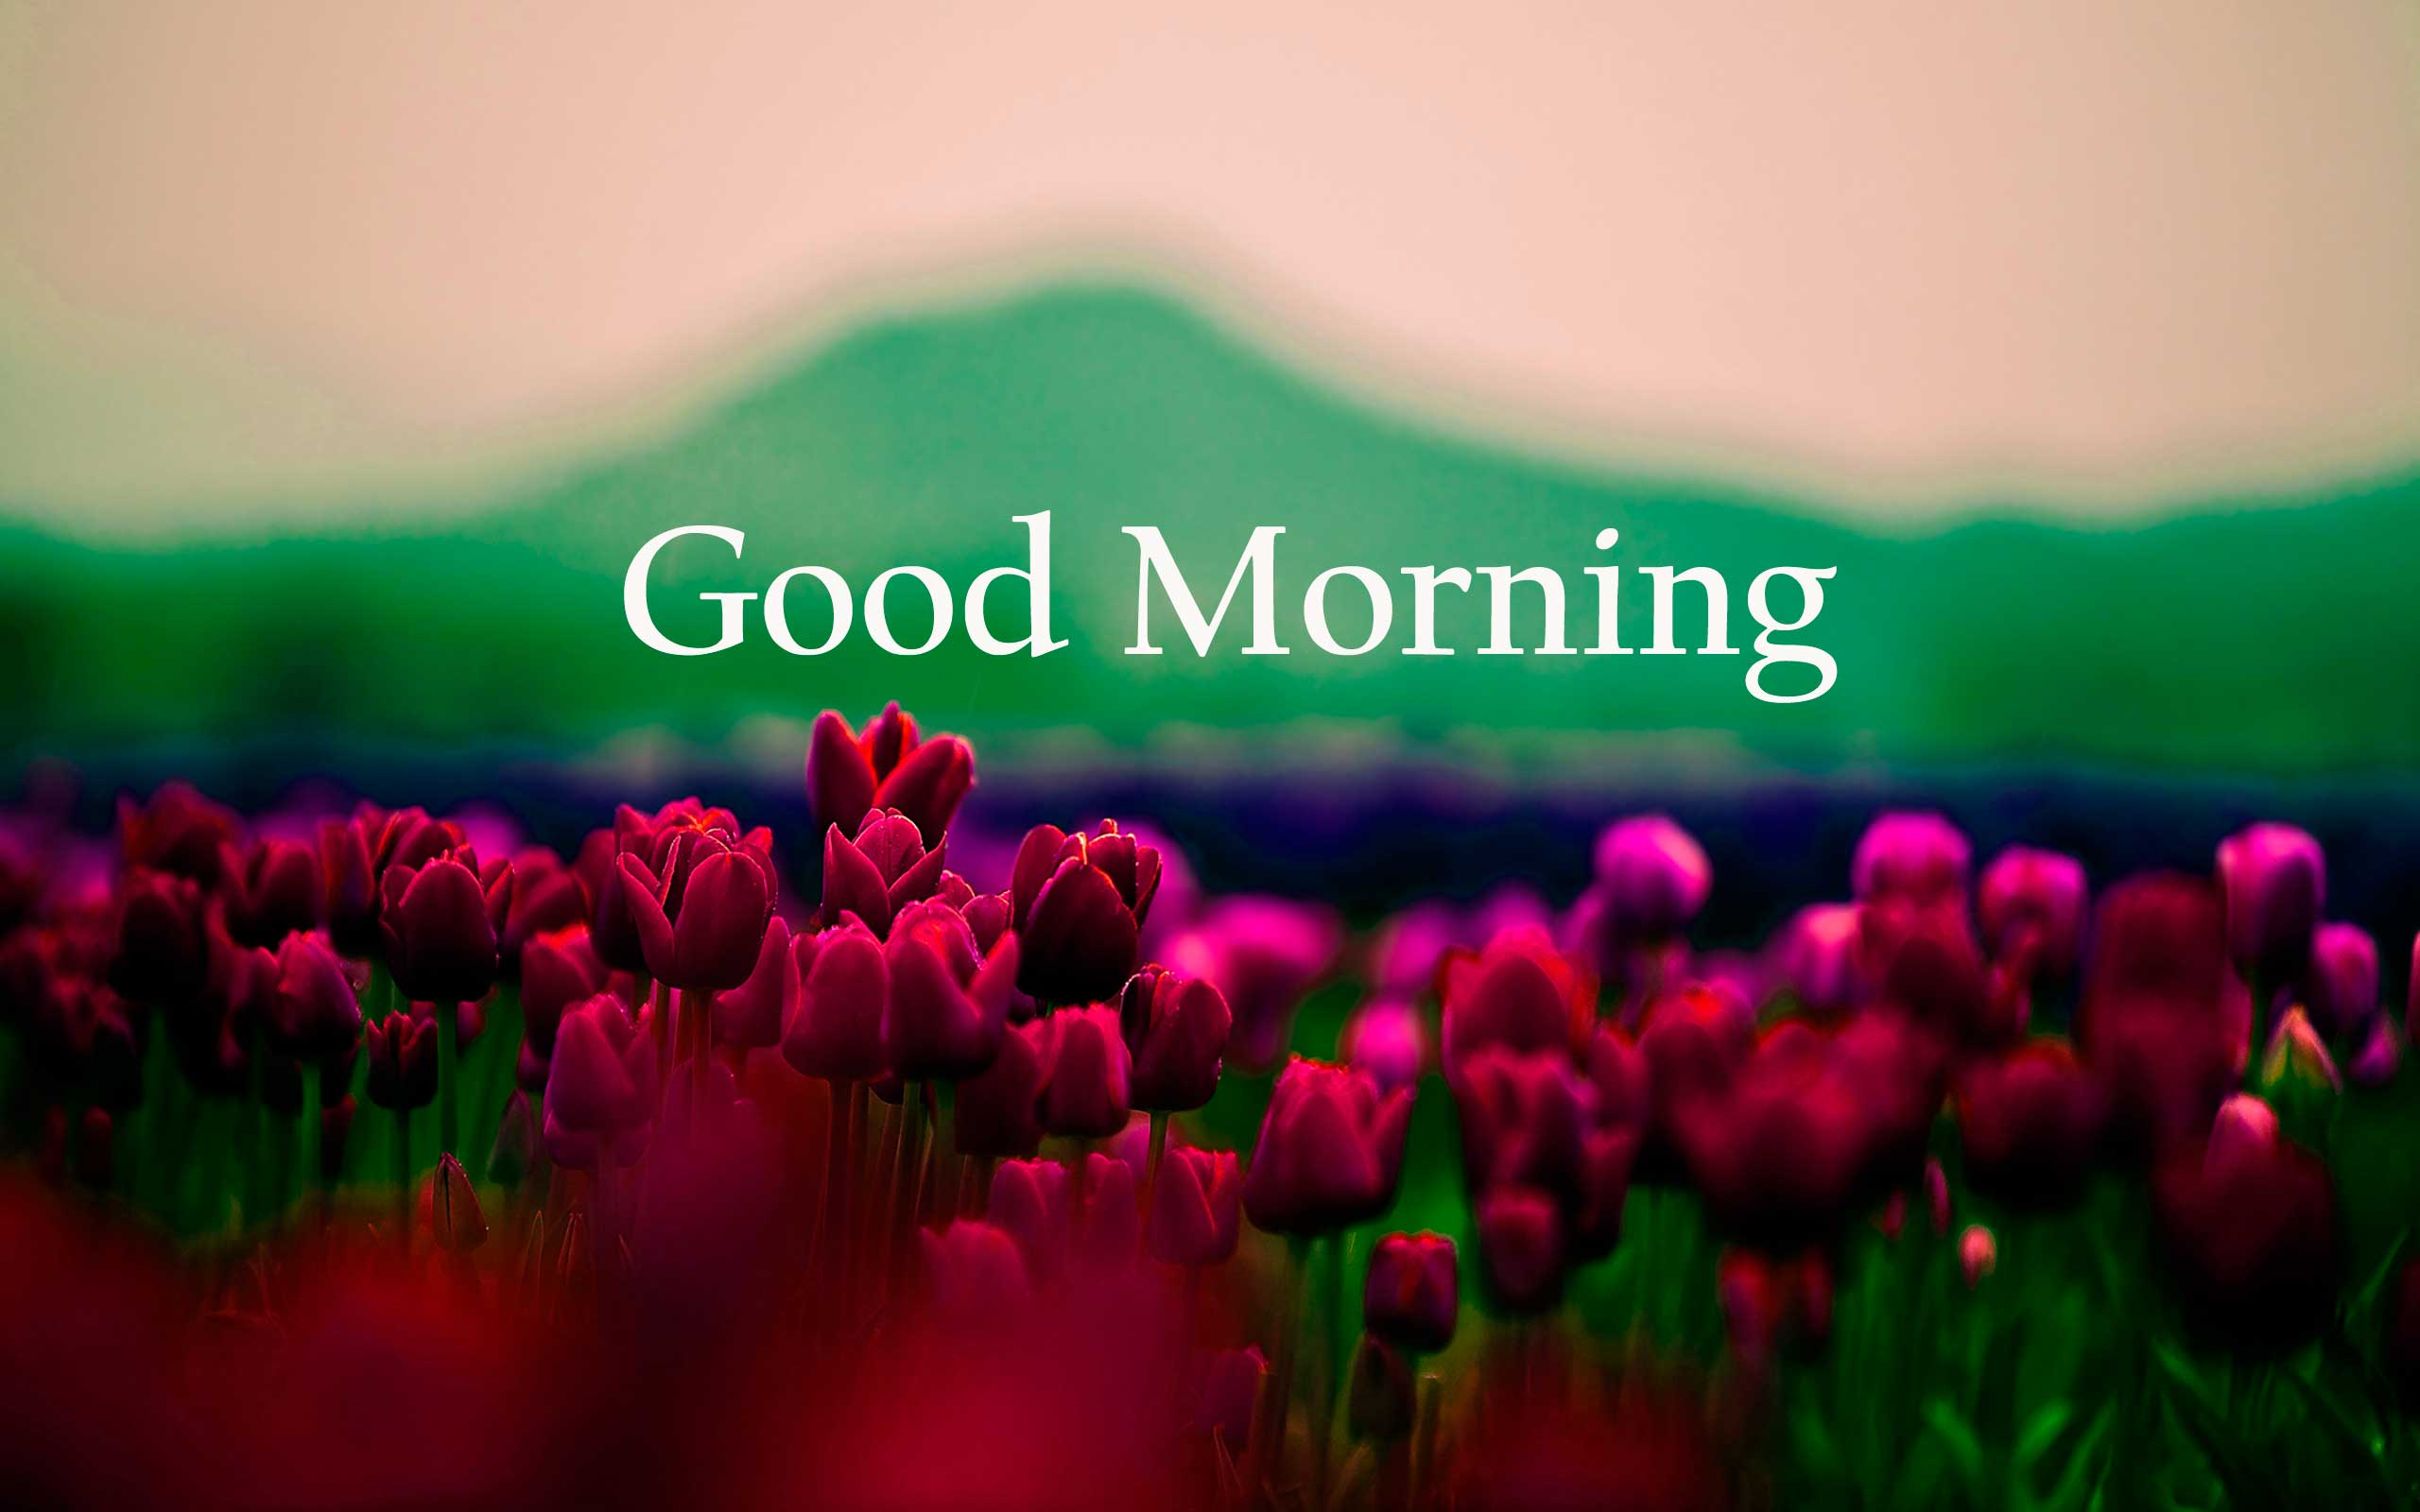 Good Morning Winter Flower : Good morning flowers images photos pics hd download here